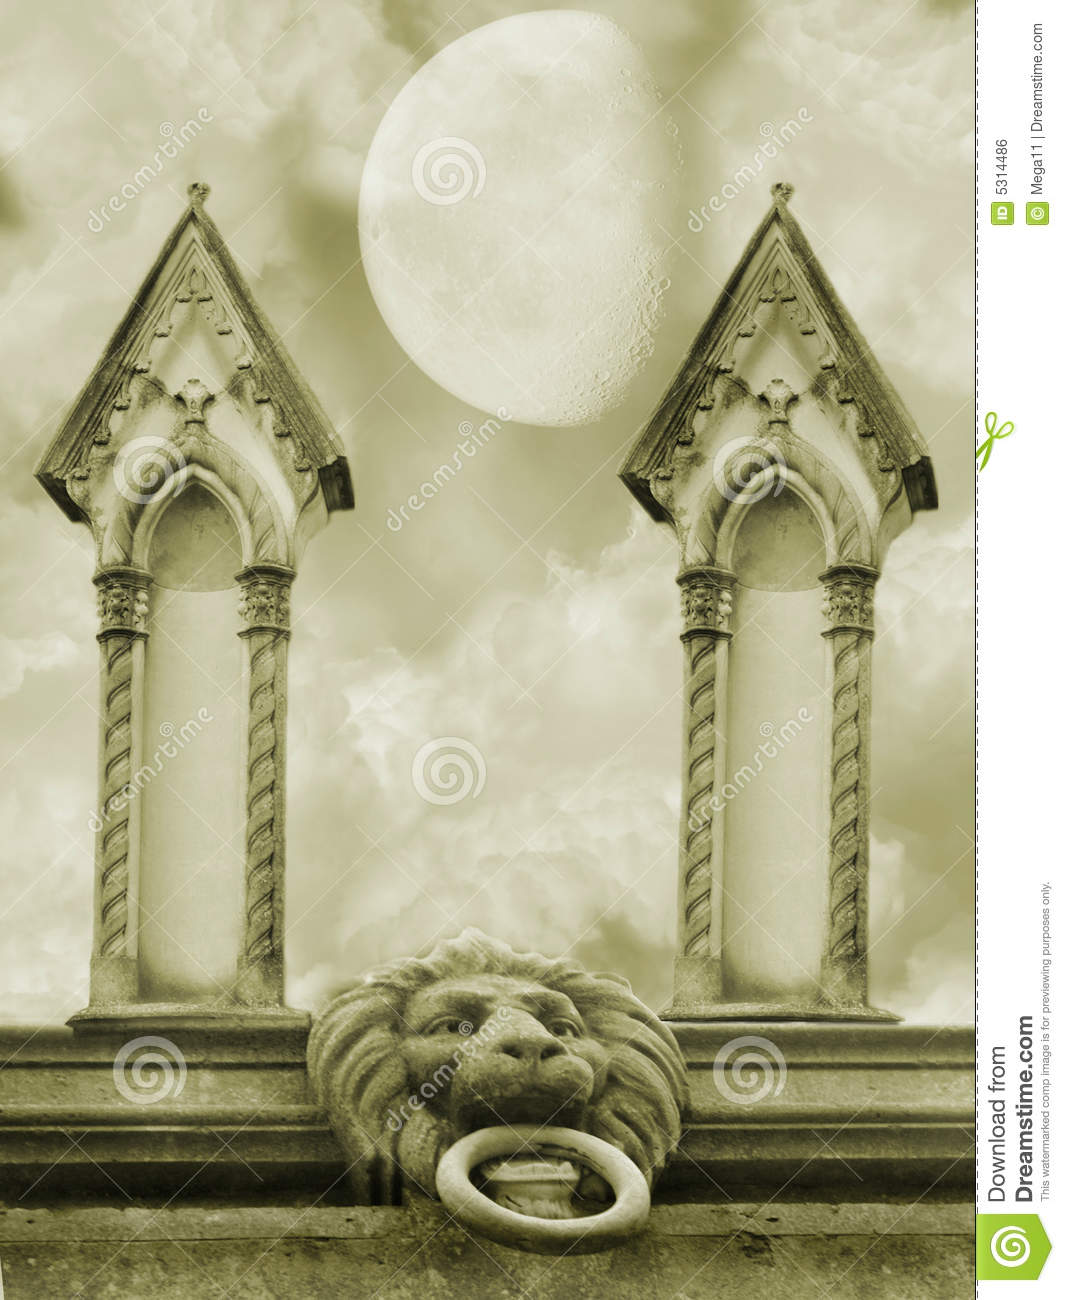 Download Scena scura illustrazione di stock. Illustrazione di glory - 5314486